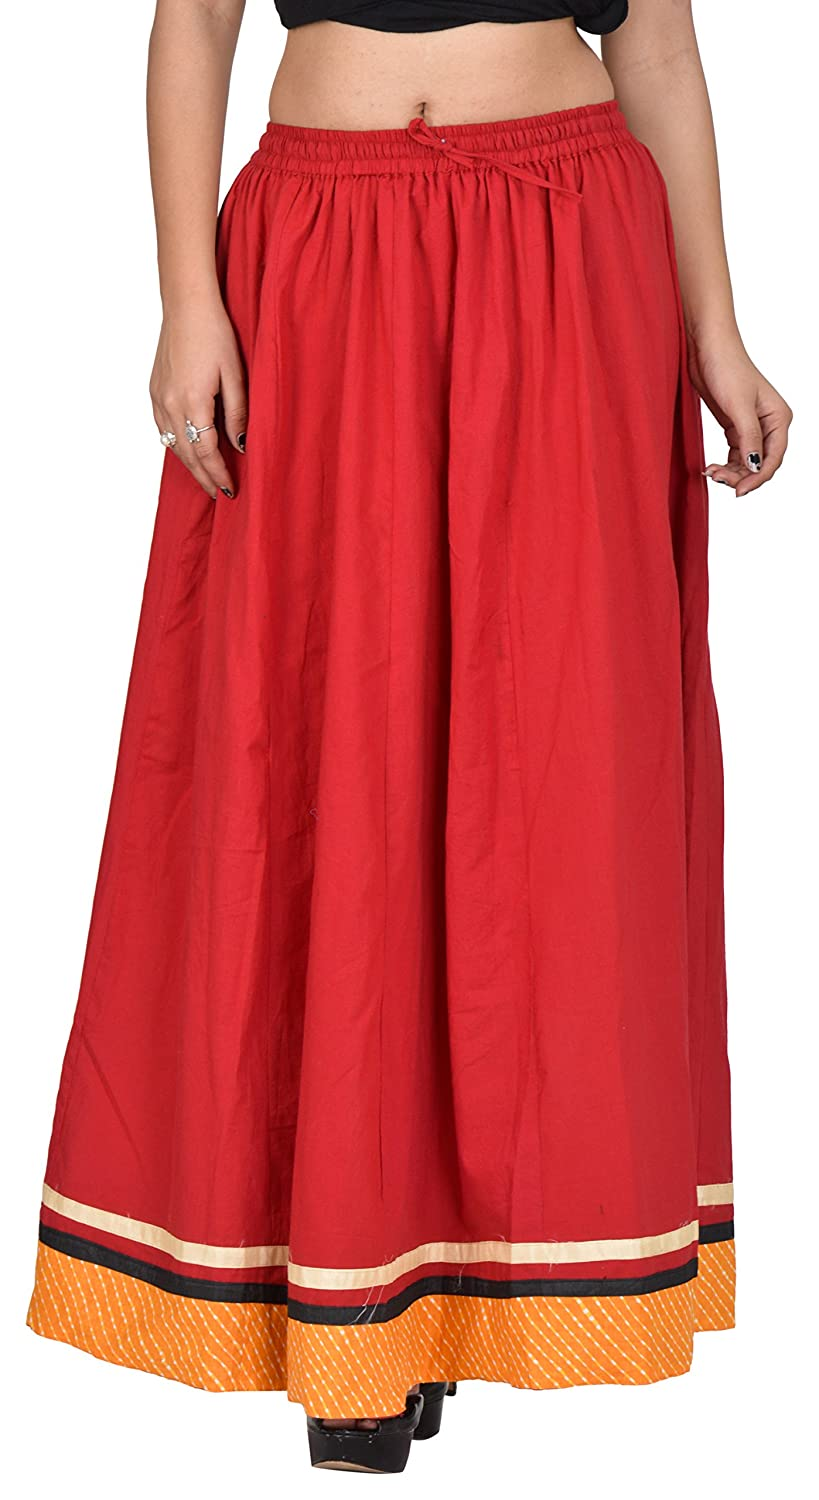 E-Tailor Women's Rang-Rej Collection Ethnic Maxi Party Wear Free Size Cotton Skirt (Red and Yellow)